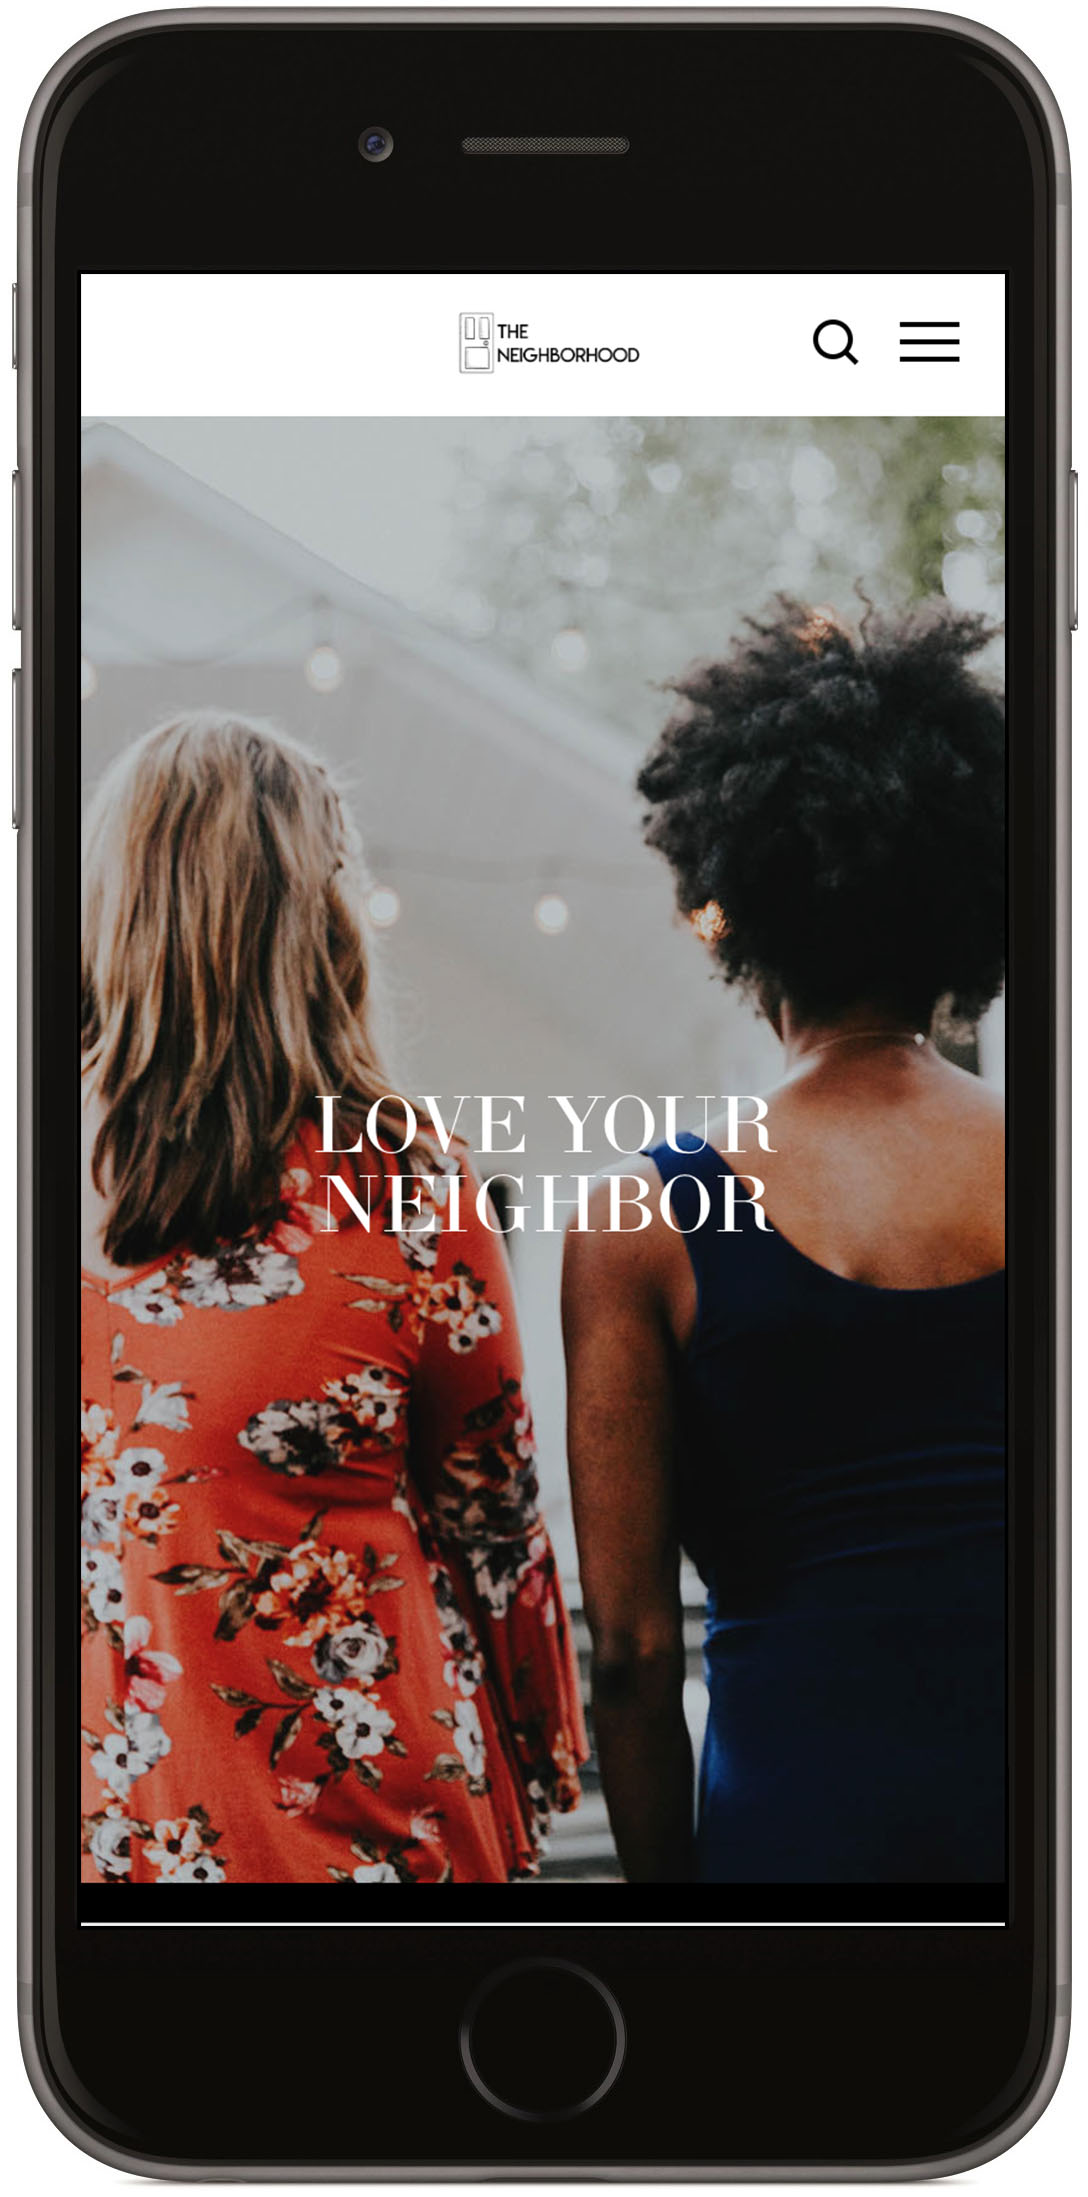 neighborhood iphone.jpg